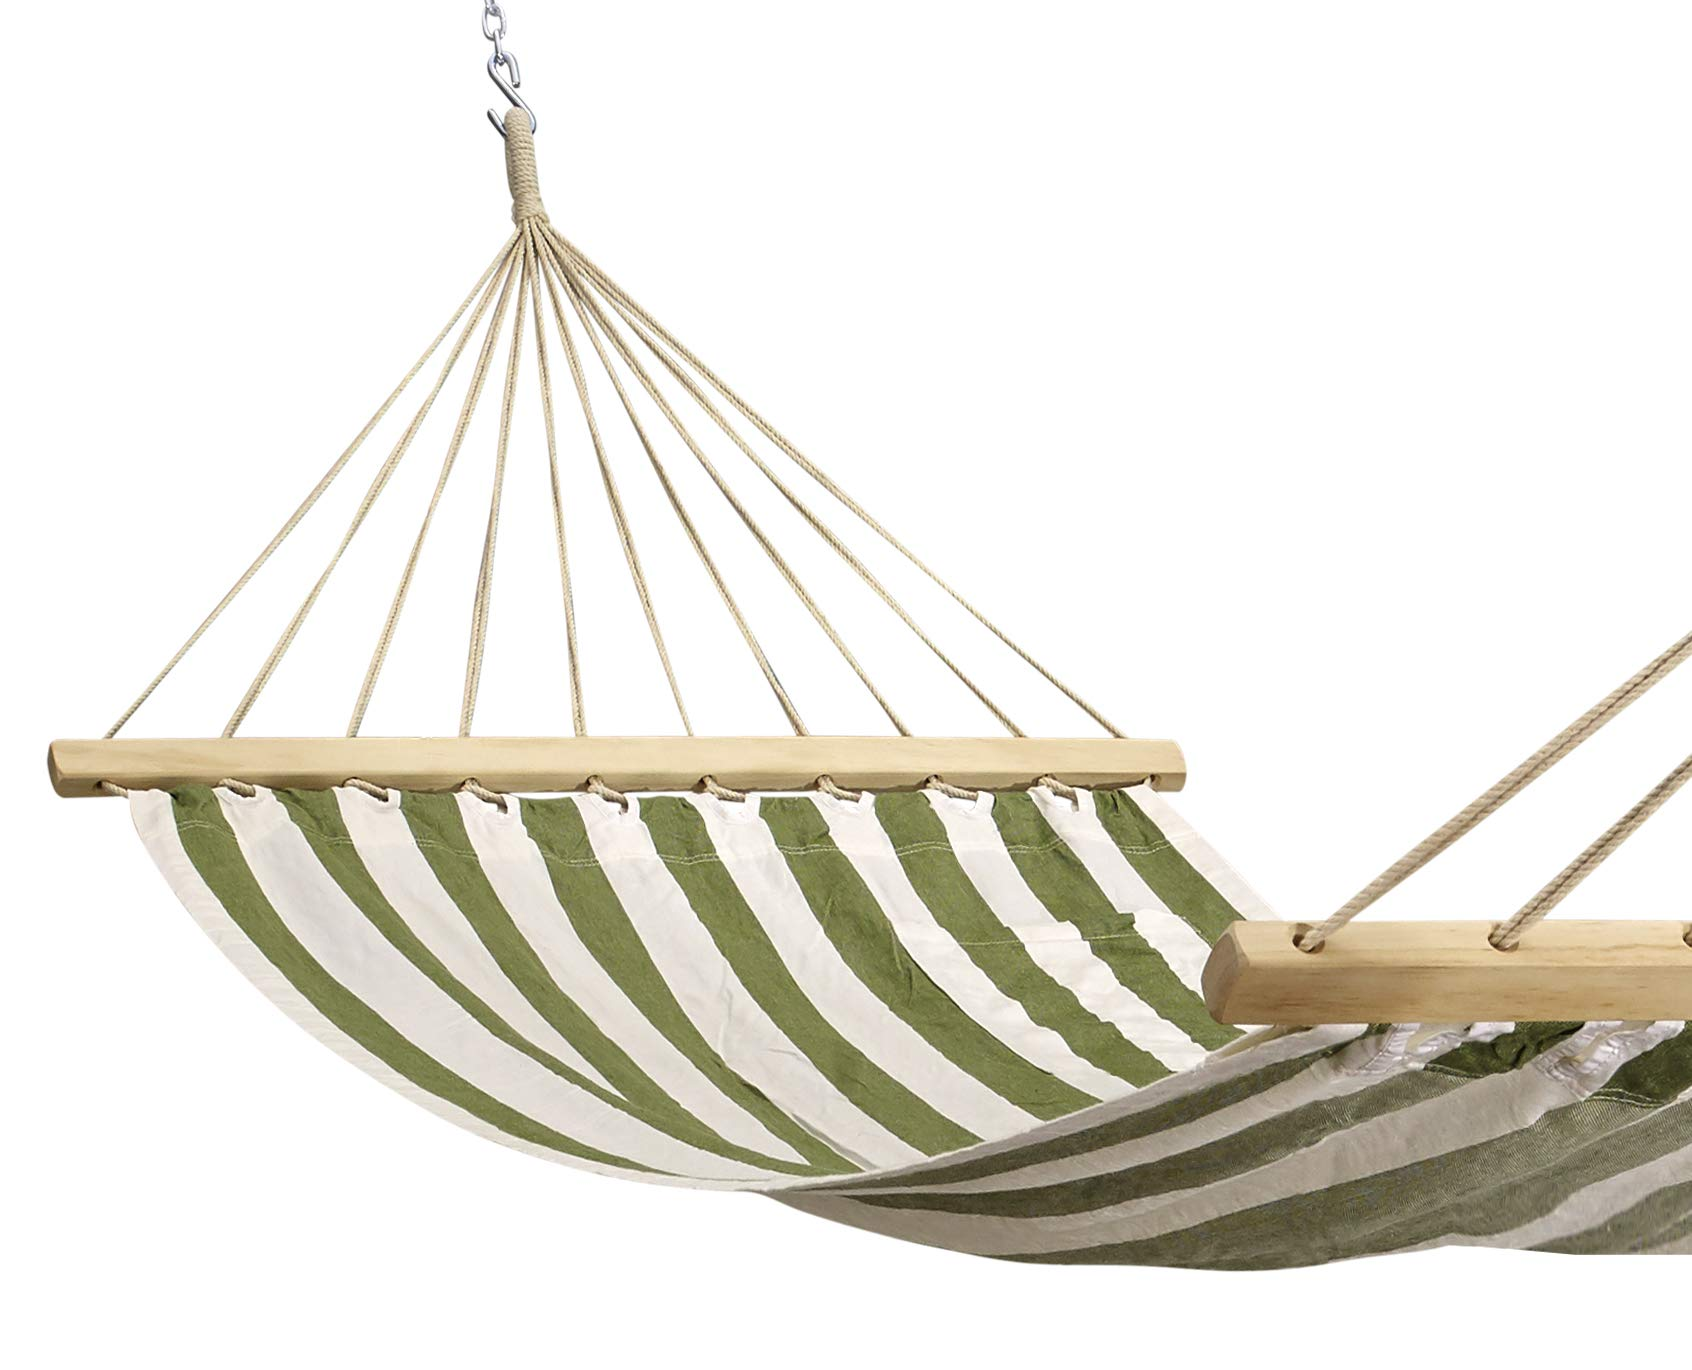 Hygge - Single Fabric Hammock with Stripes Made with 100% Cotton Comes with a Magazine Holder and Hardwood Spreader bar. Perfect for Your Garden and Patio! - Our hammock is made from 100% natural cotton, the hammock provides extreme comfort and the number of suspension contributes to the durability of this product. This hammock is yarn-dyed fabric. This hammock comes with a magazine/ iPad holder and a multi-purpose co-ordinated fabric bag that can be used as a bag-pack as well. Dimensions: Bed Width: 48 inches; Bed Length: 78 inches; Overall Length: 132 inches Maximum carry capacity is 450 pounds. - patio-furniture, patio, hammocks - 71lTHgSy87L -